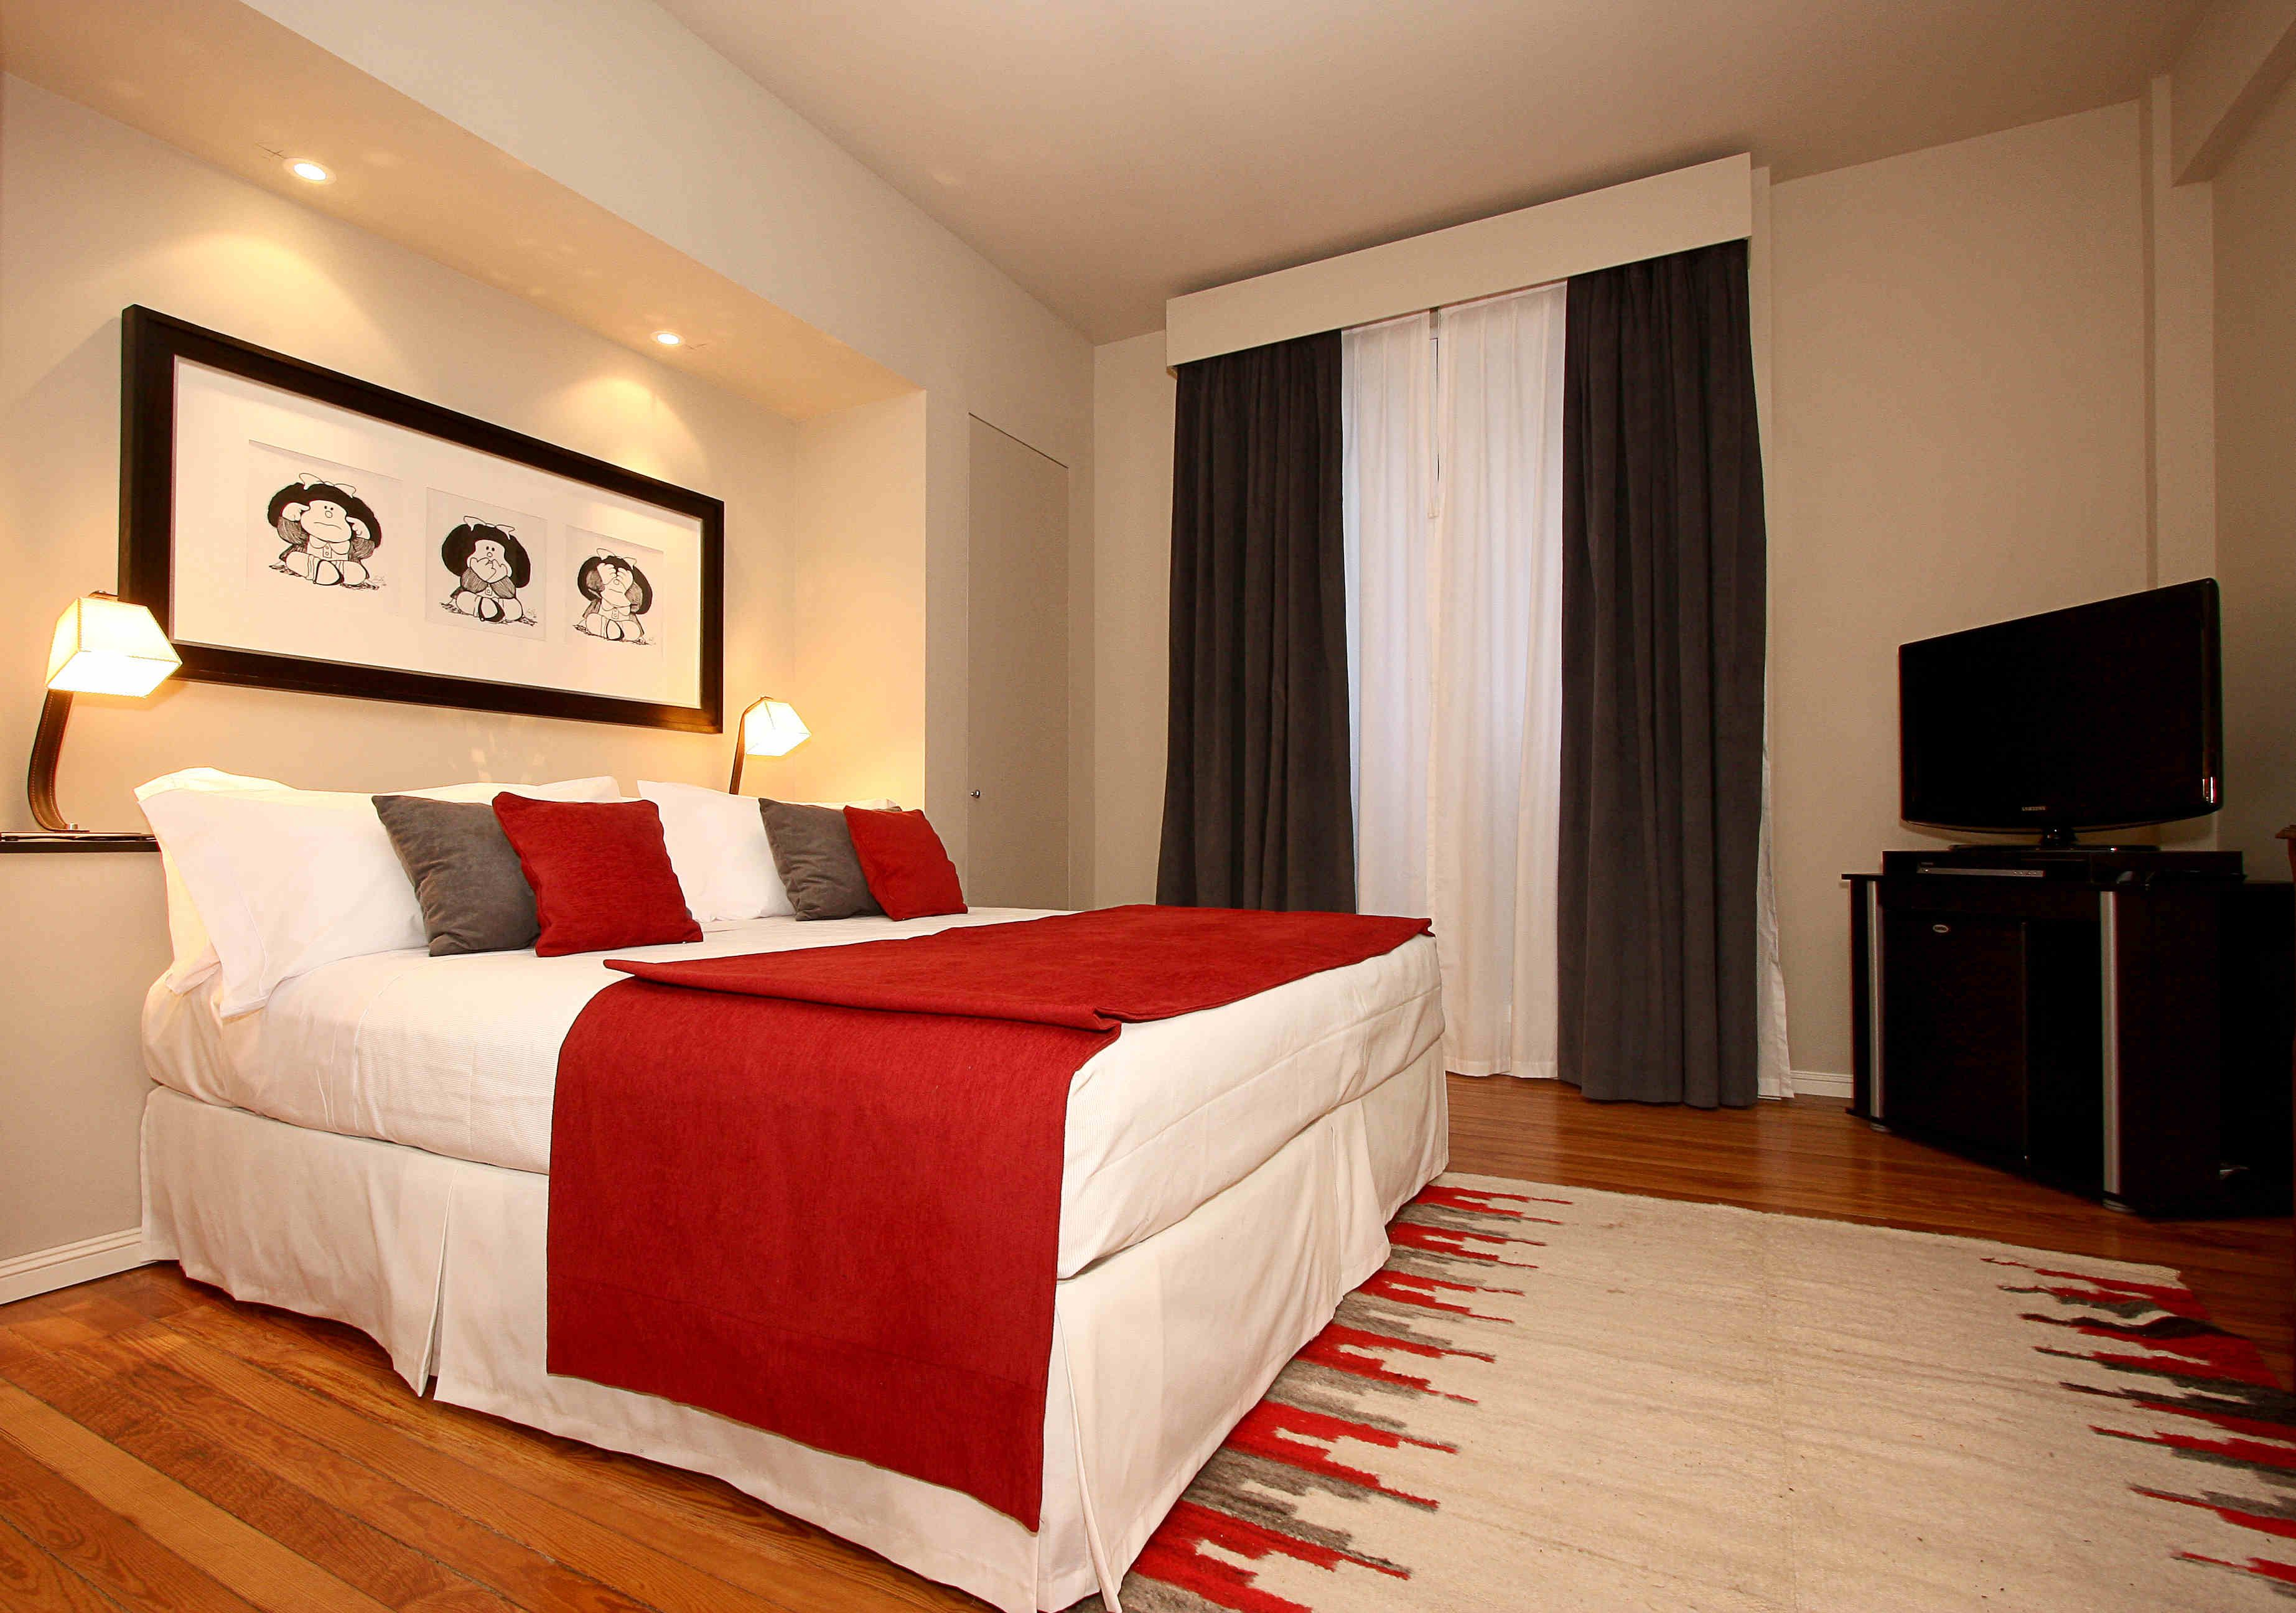 Contact legado mítico through great small hotels an exclusive selection of boutique hotels and small luxury